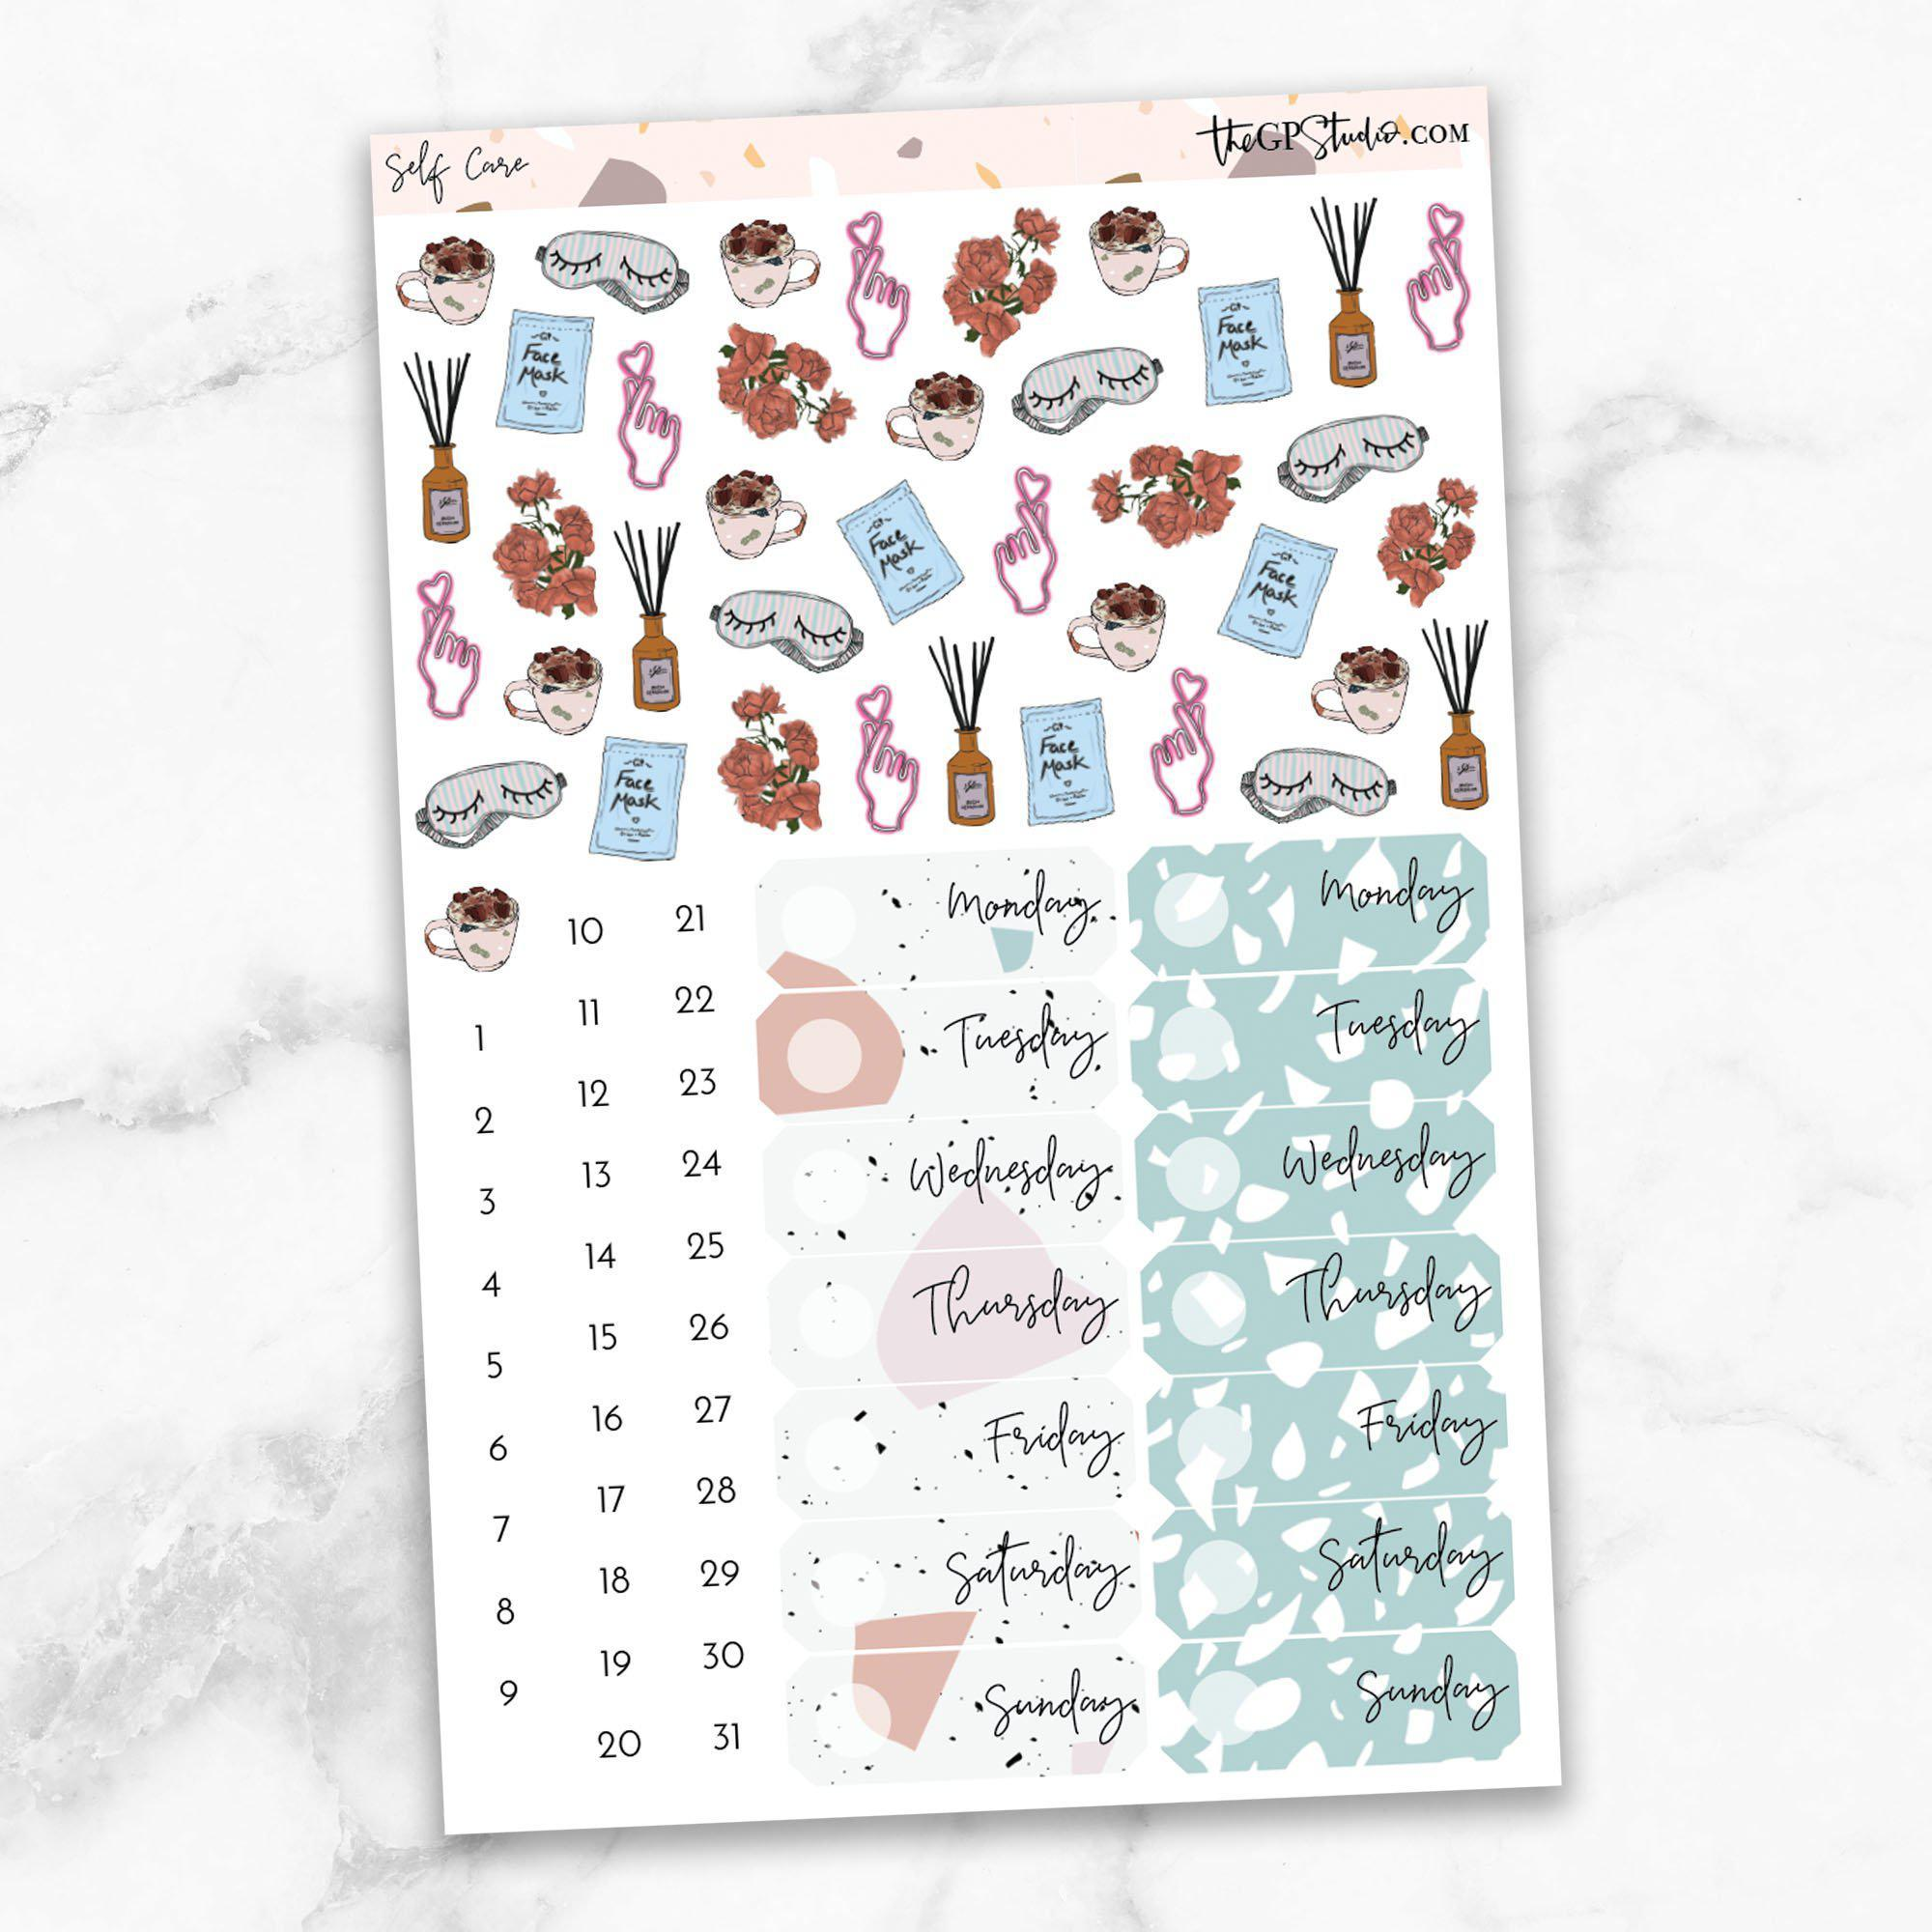 SELF CARE Deco & Date Cover Stickers-The GP Studio